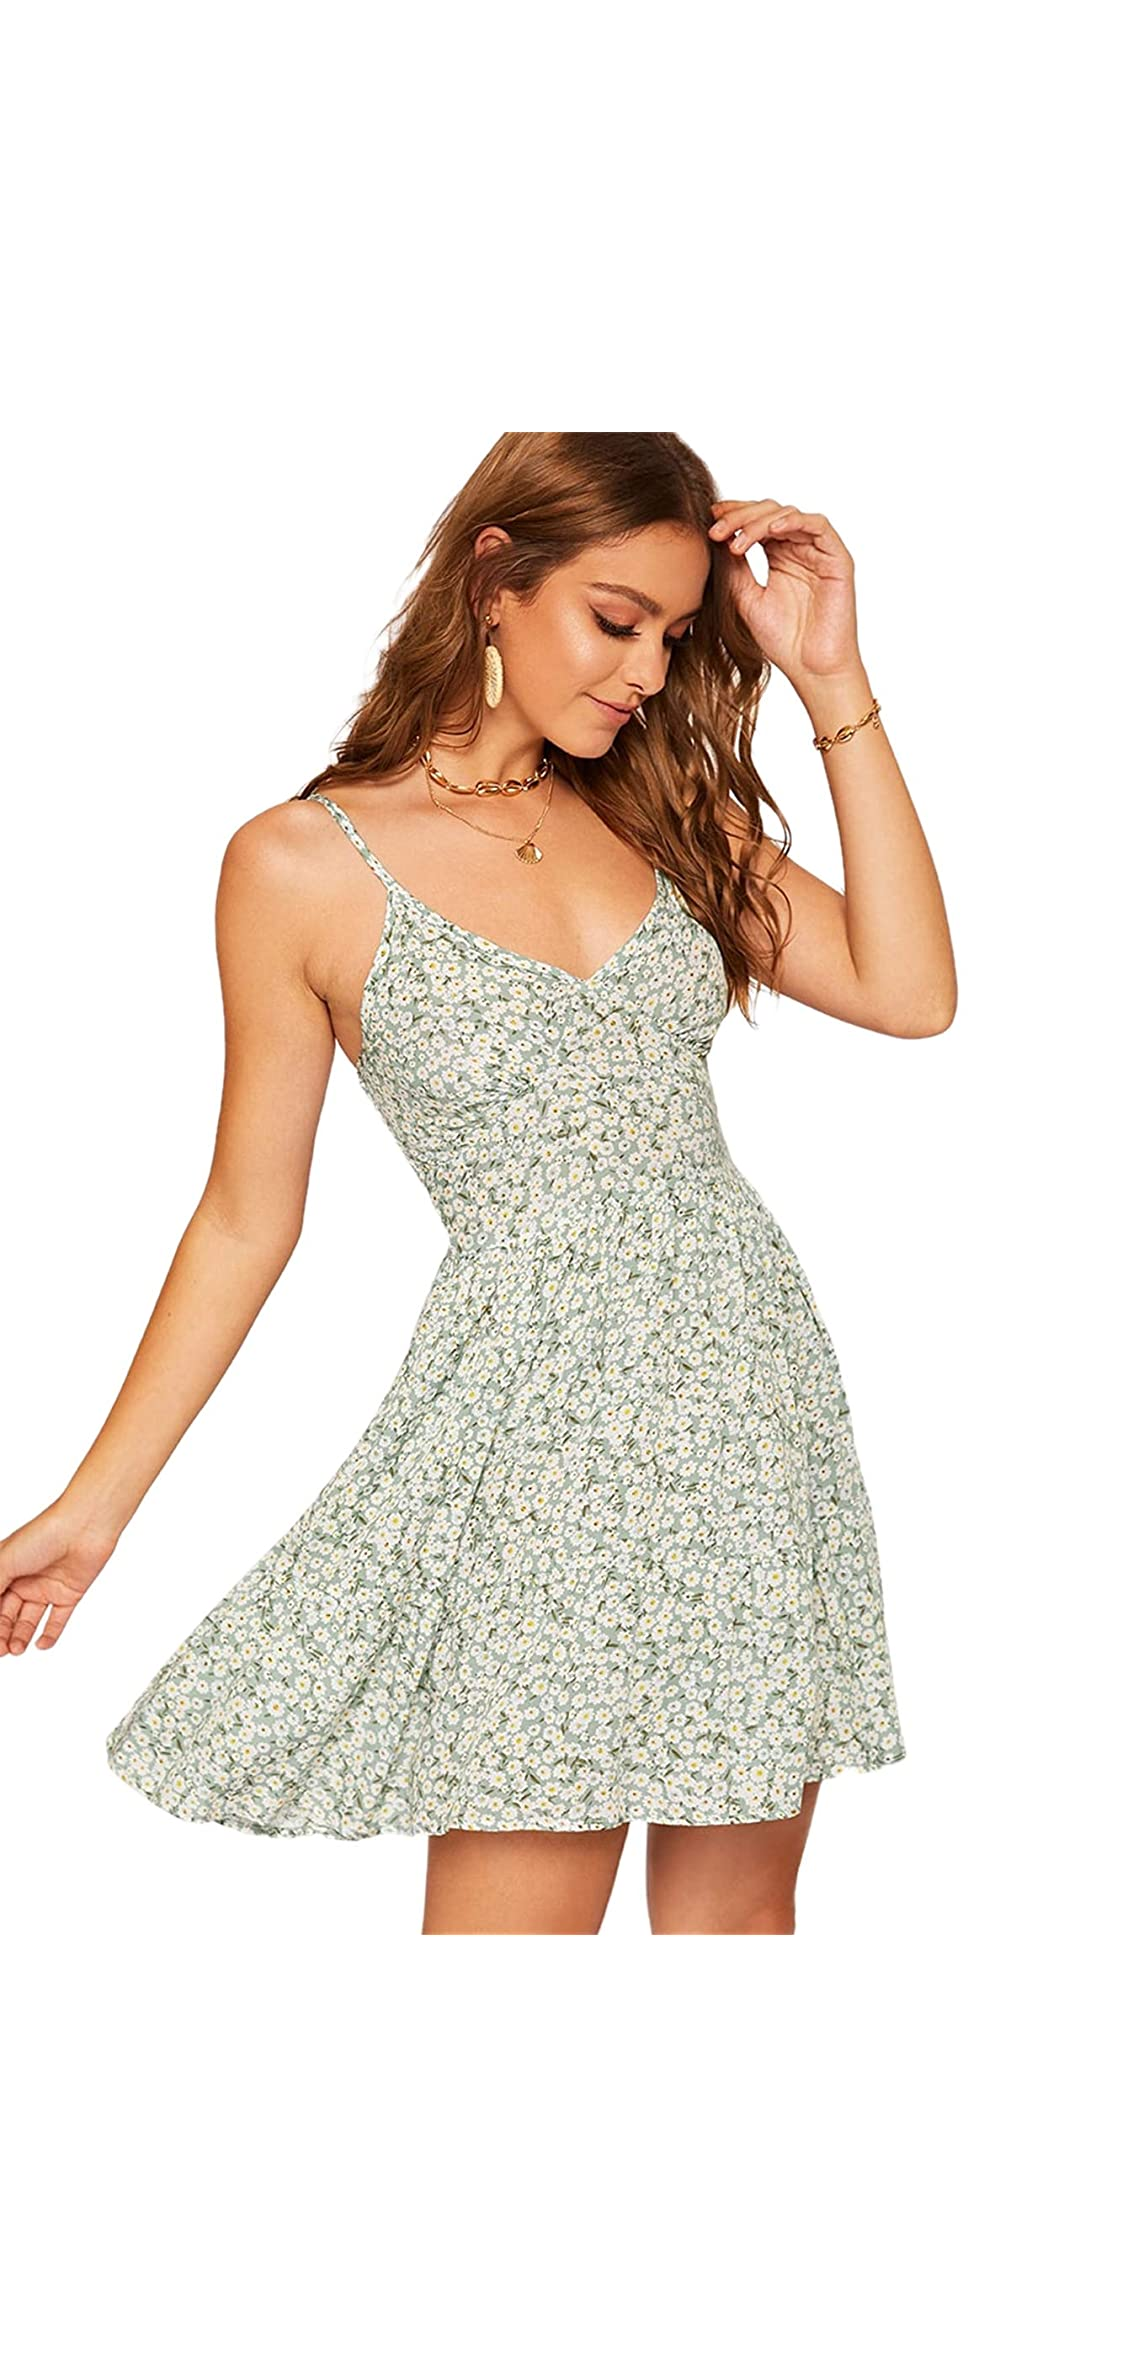 Women's High Waist Fit And Flare Vneck Floral Cami Dress